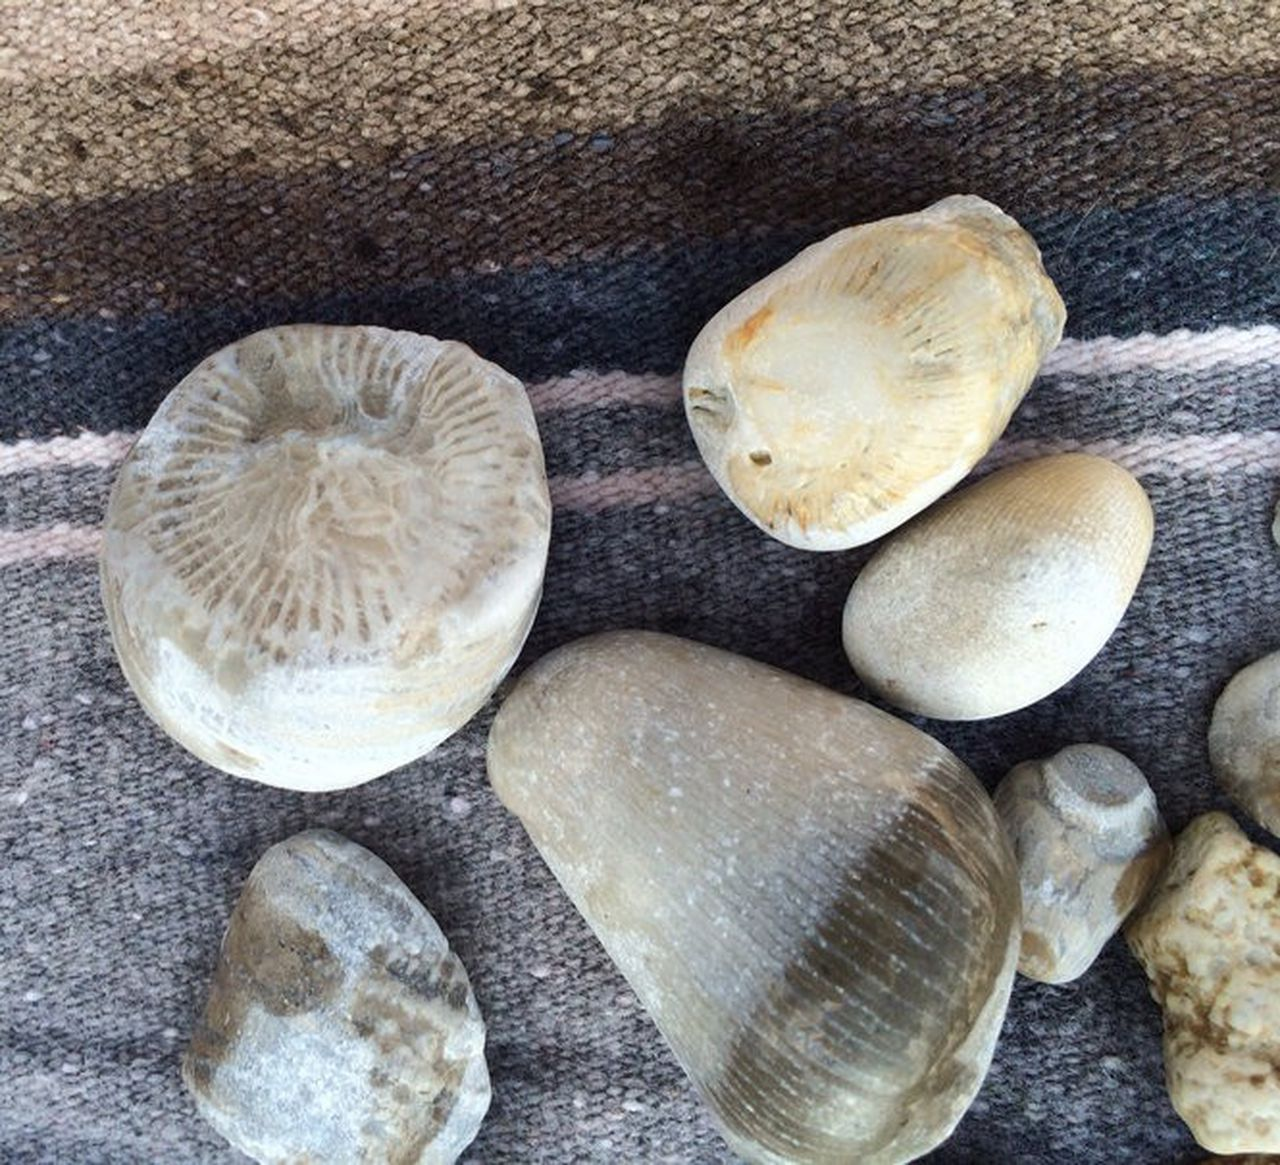 Collectible rocks of southwest lake michigan beaches in